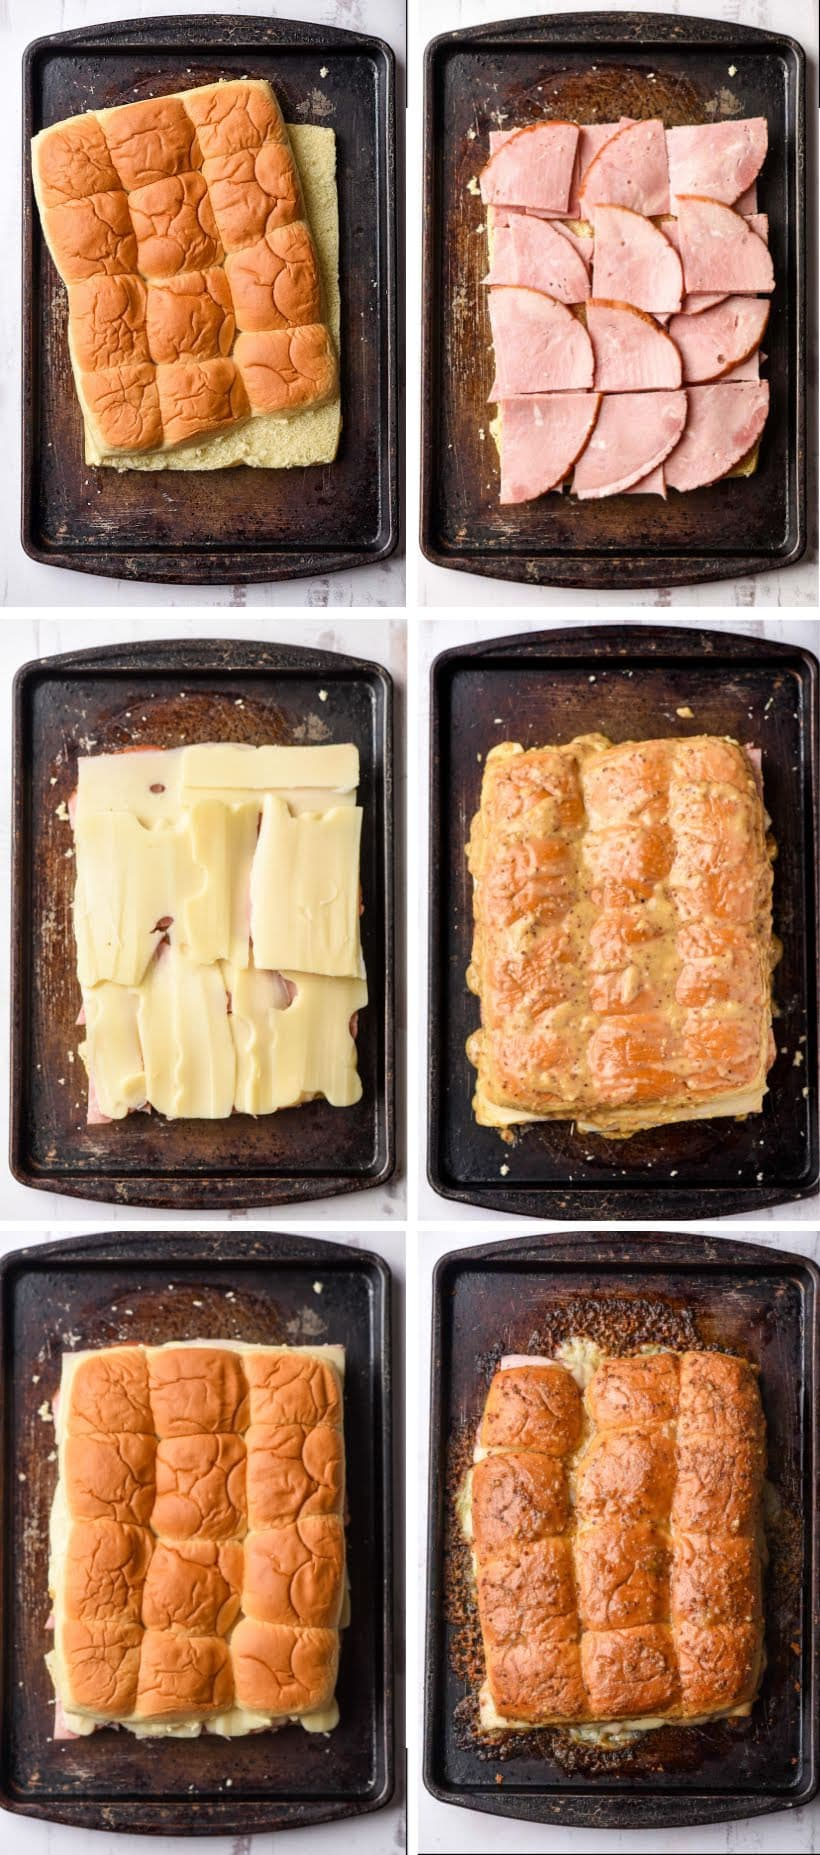 Series of photos showing how to make ham and cheese sliders